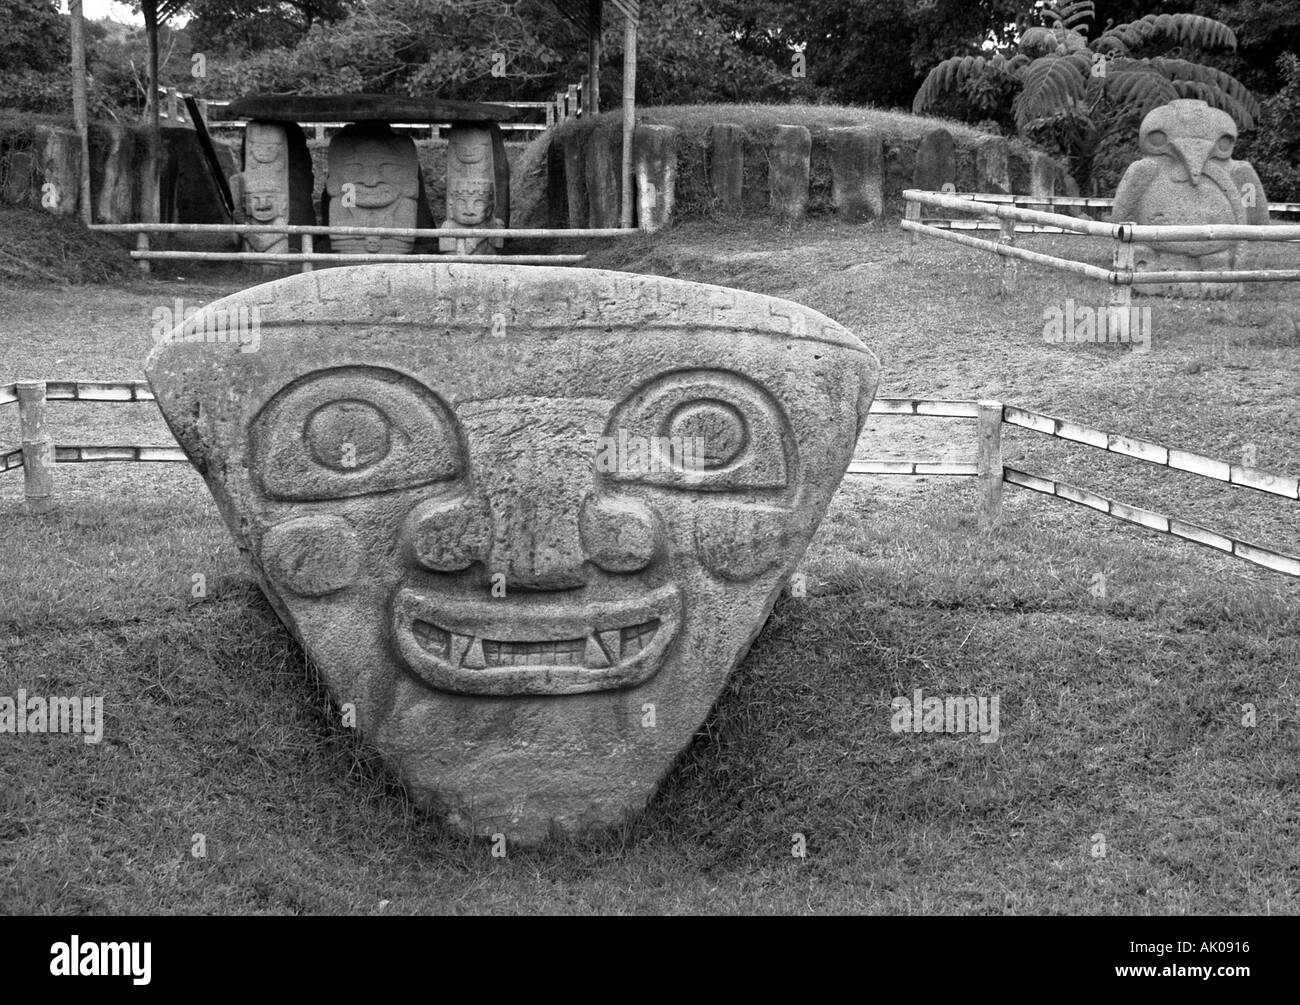 Huge triangular shape head big eye nose bird Gods Divinity celebrate faith worship San Agustín Colombia South Latin America - Stock Image